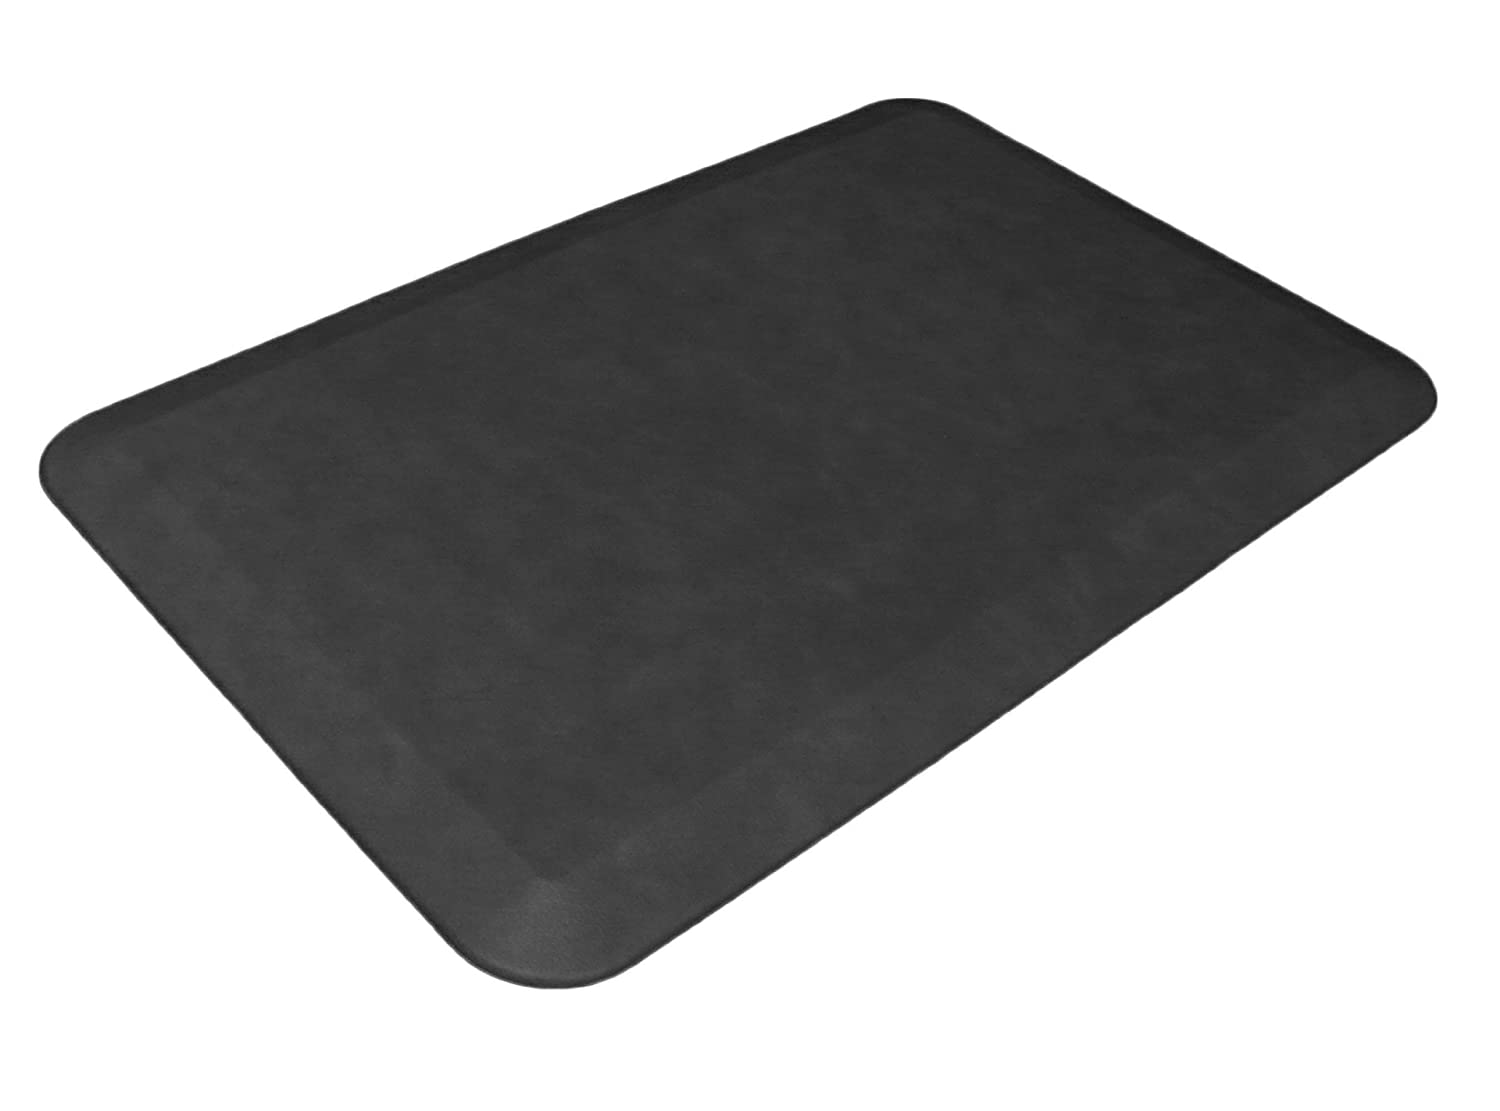 Comfort Mats For Kitchen Floor Similiar Comfort Floor Mats For Kitchen Keywords